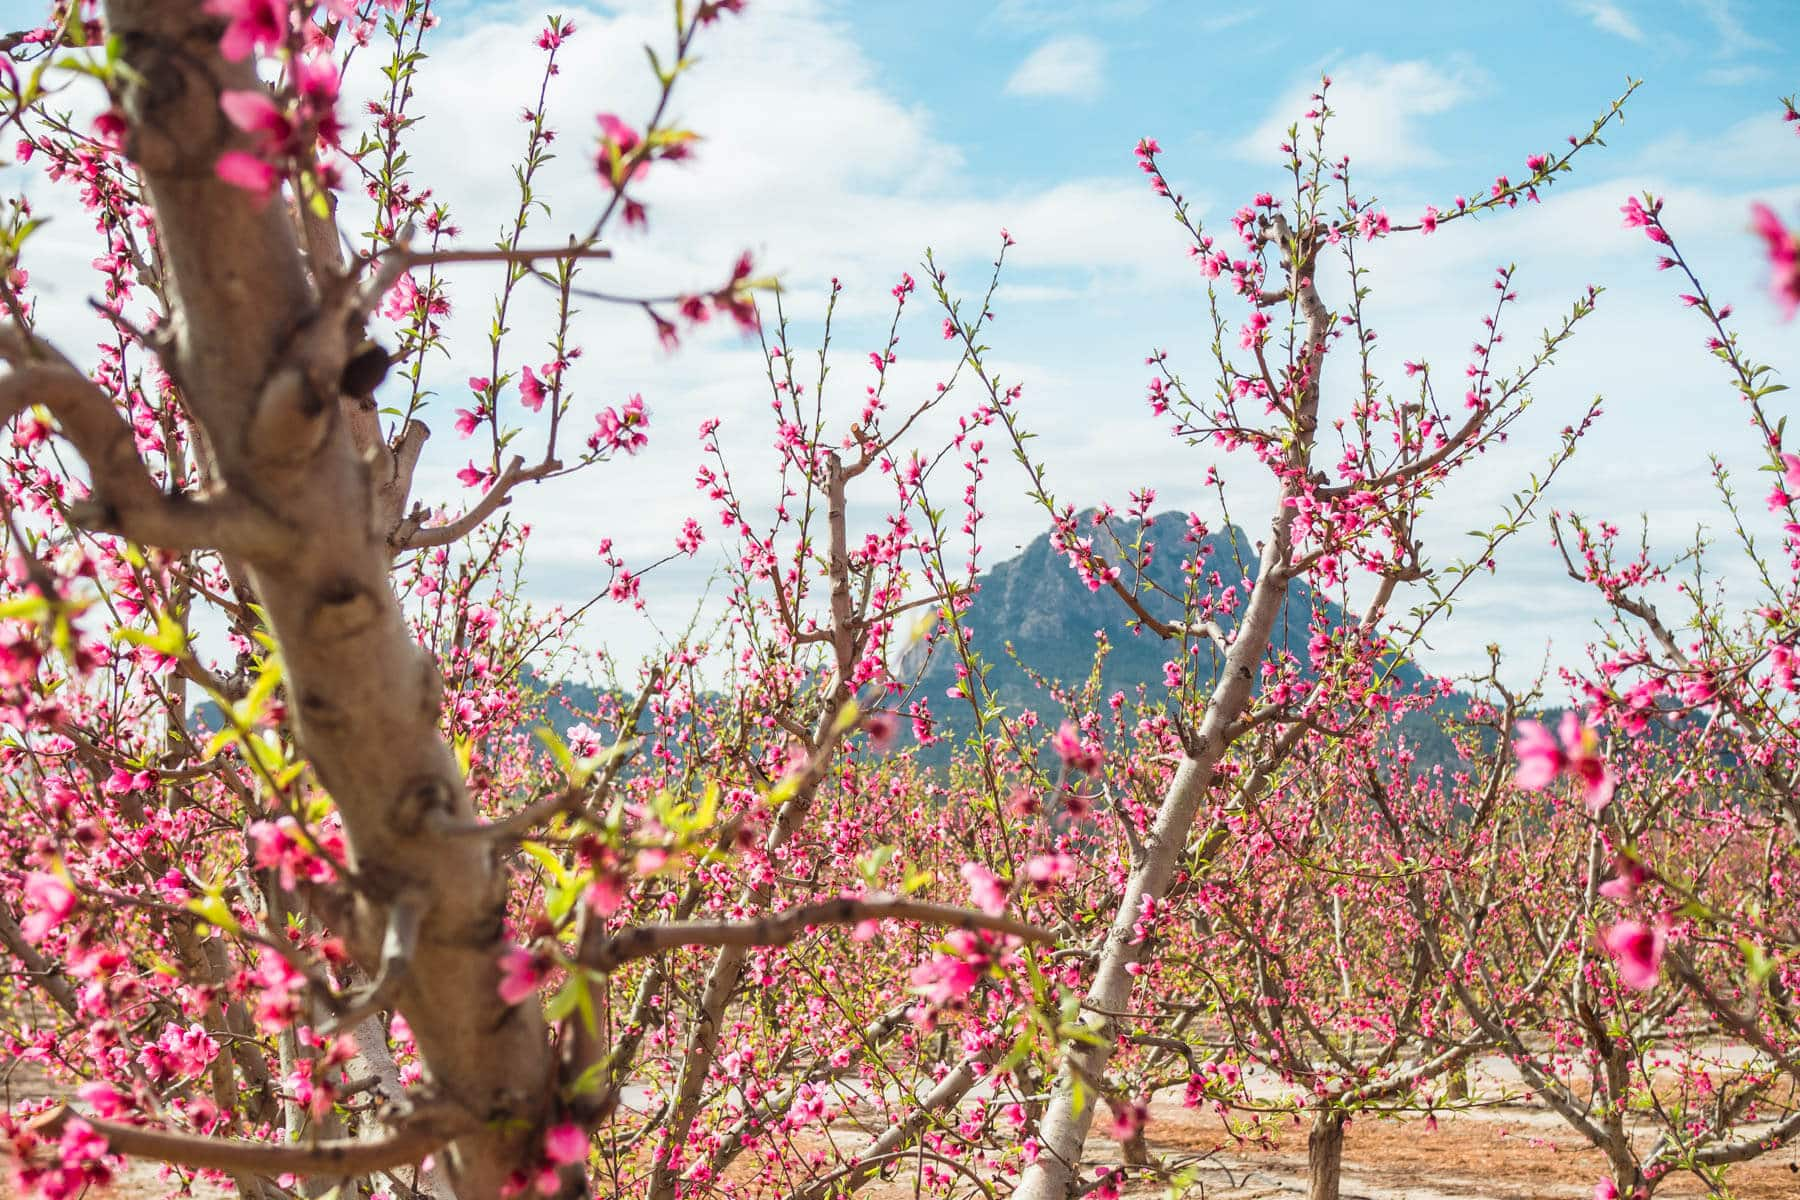 Close up view of beautiful peach tree blossoms in the little town of Cieza in Murcia, Spain